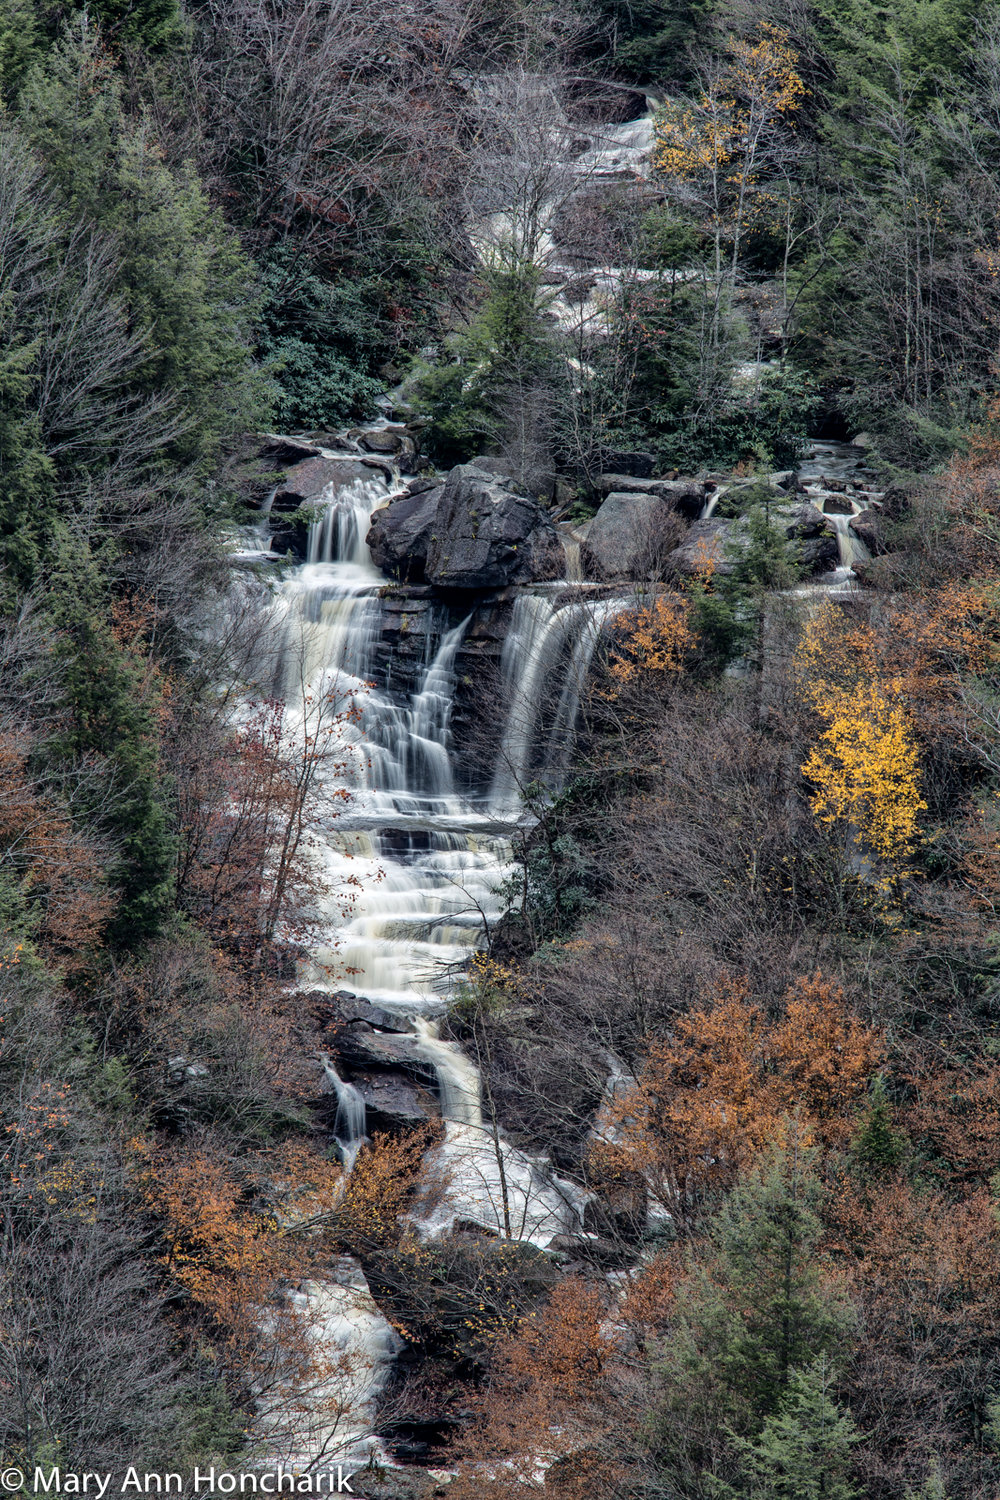 """Pendleton Falls"" by Mary Ann Honcharik Auction item #129   Giclee print photograph, silver metal frame, 20"" x 28""x 1.25"""